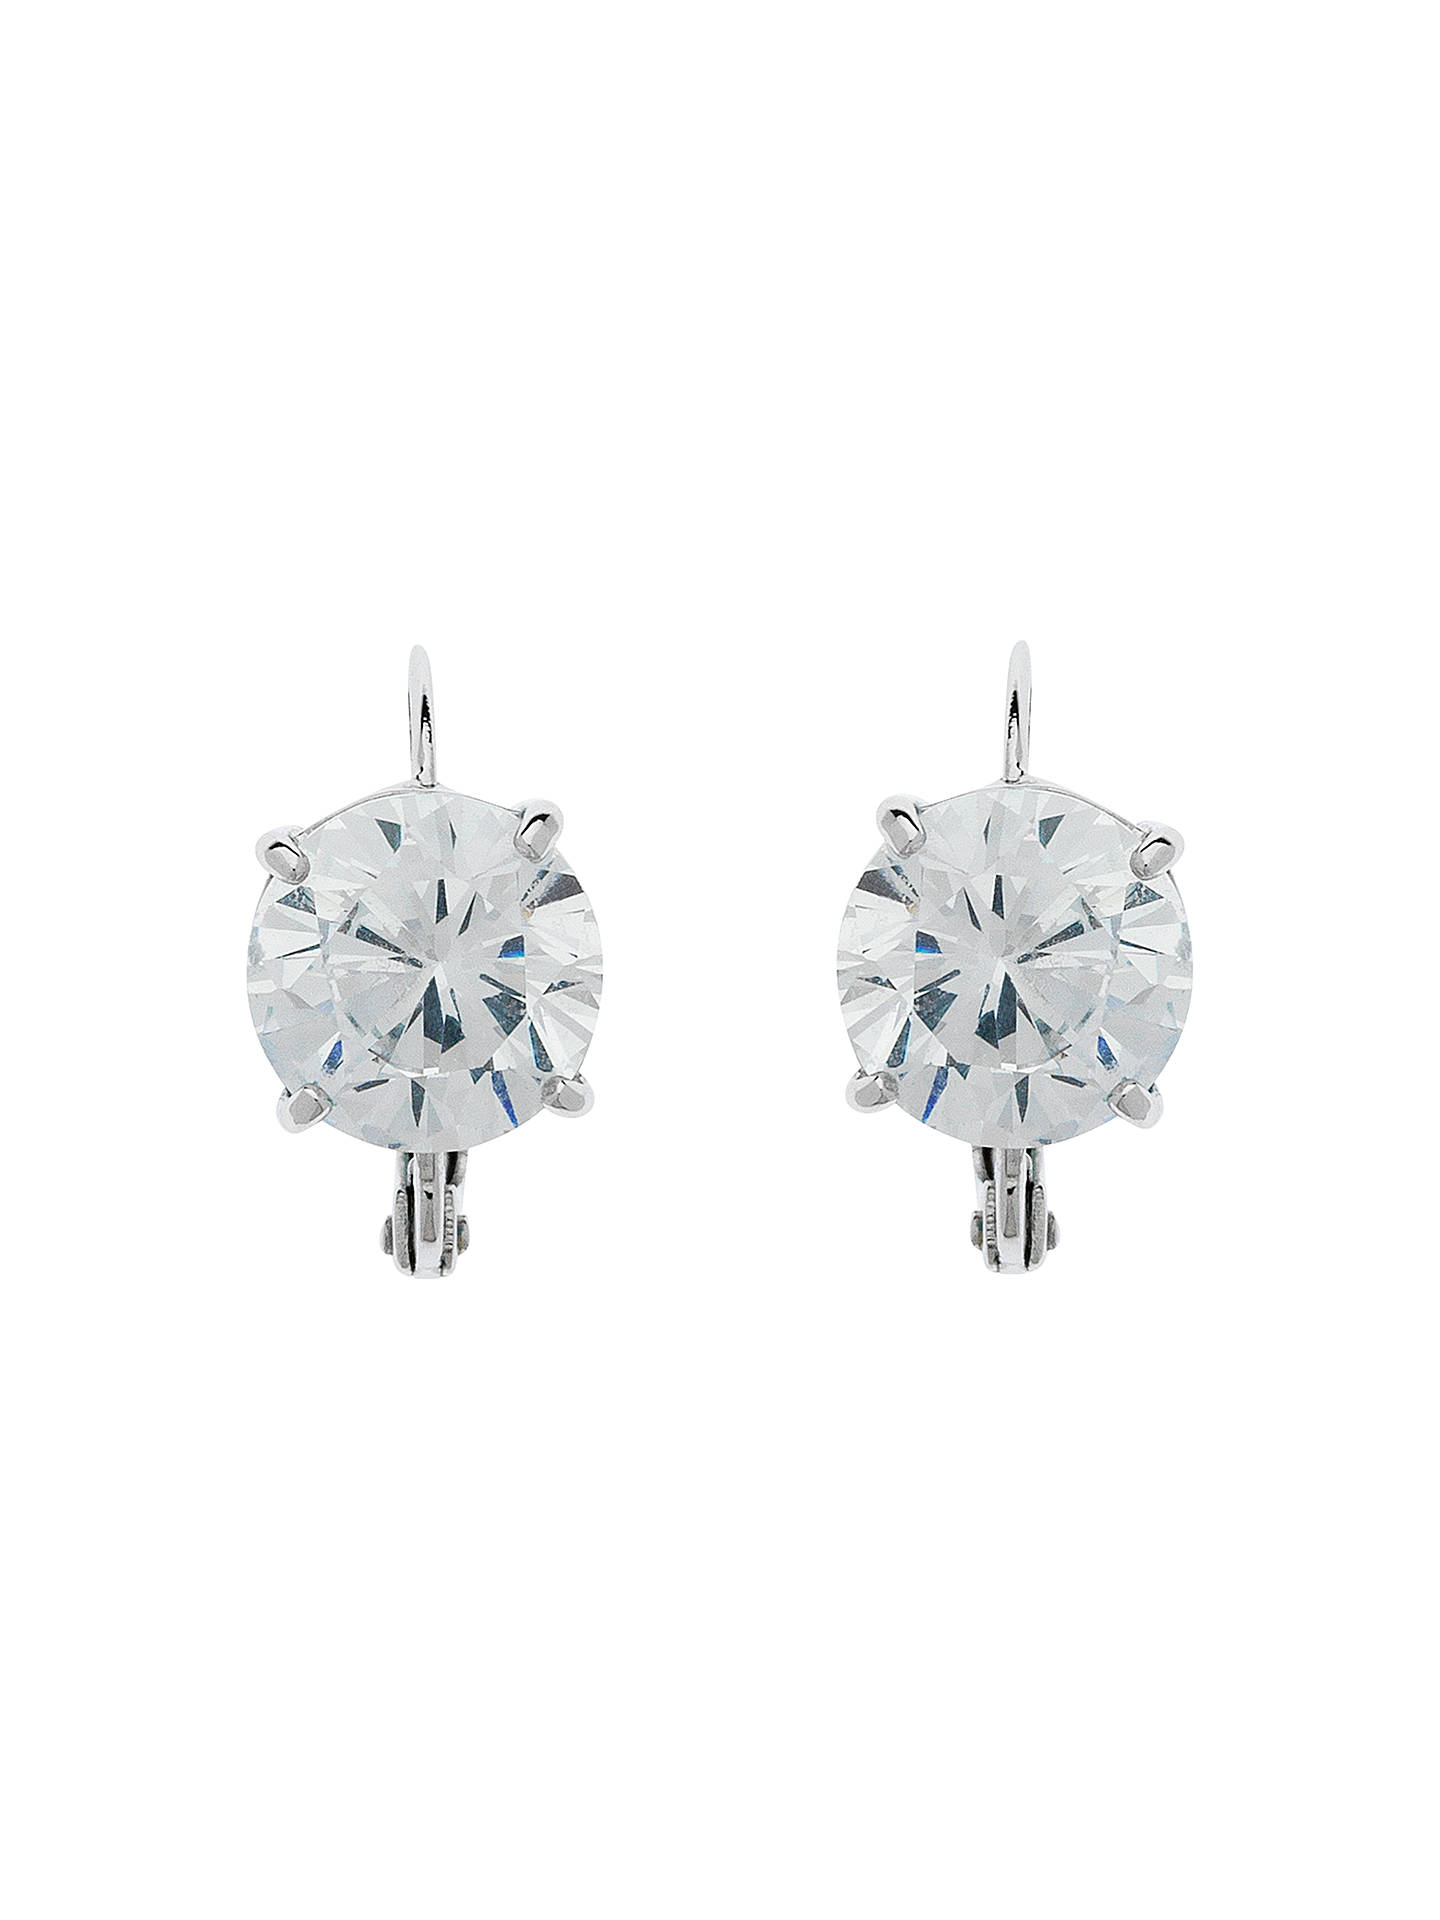 5cb1e383322d Cachet Rhodium Plated Swarovski Crystal Leverback Drop Earrings ...